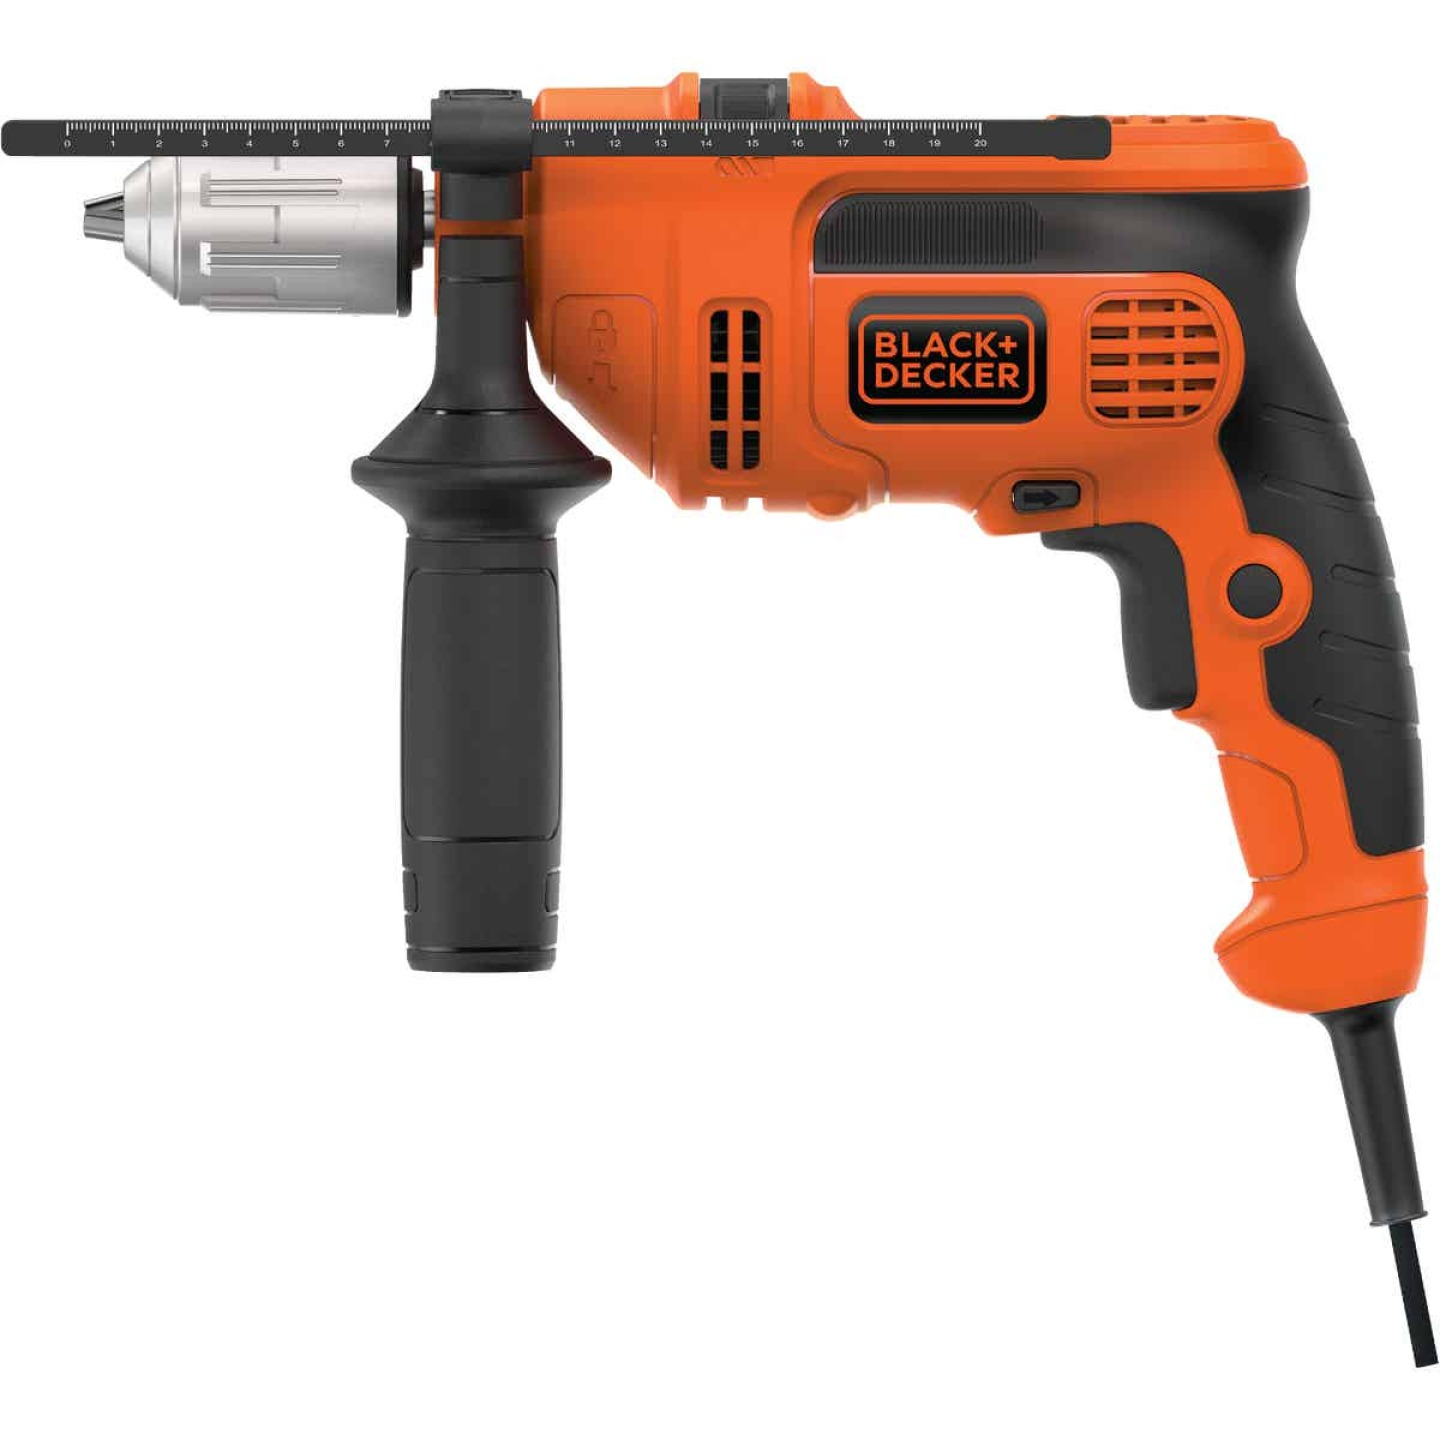 Black and Decker 1/2 In. 6.5-Amp Keyless Electric Hammer Drill Image 1